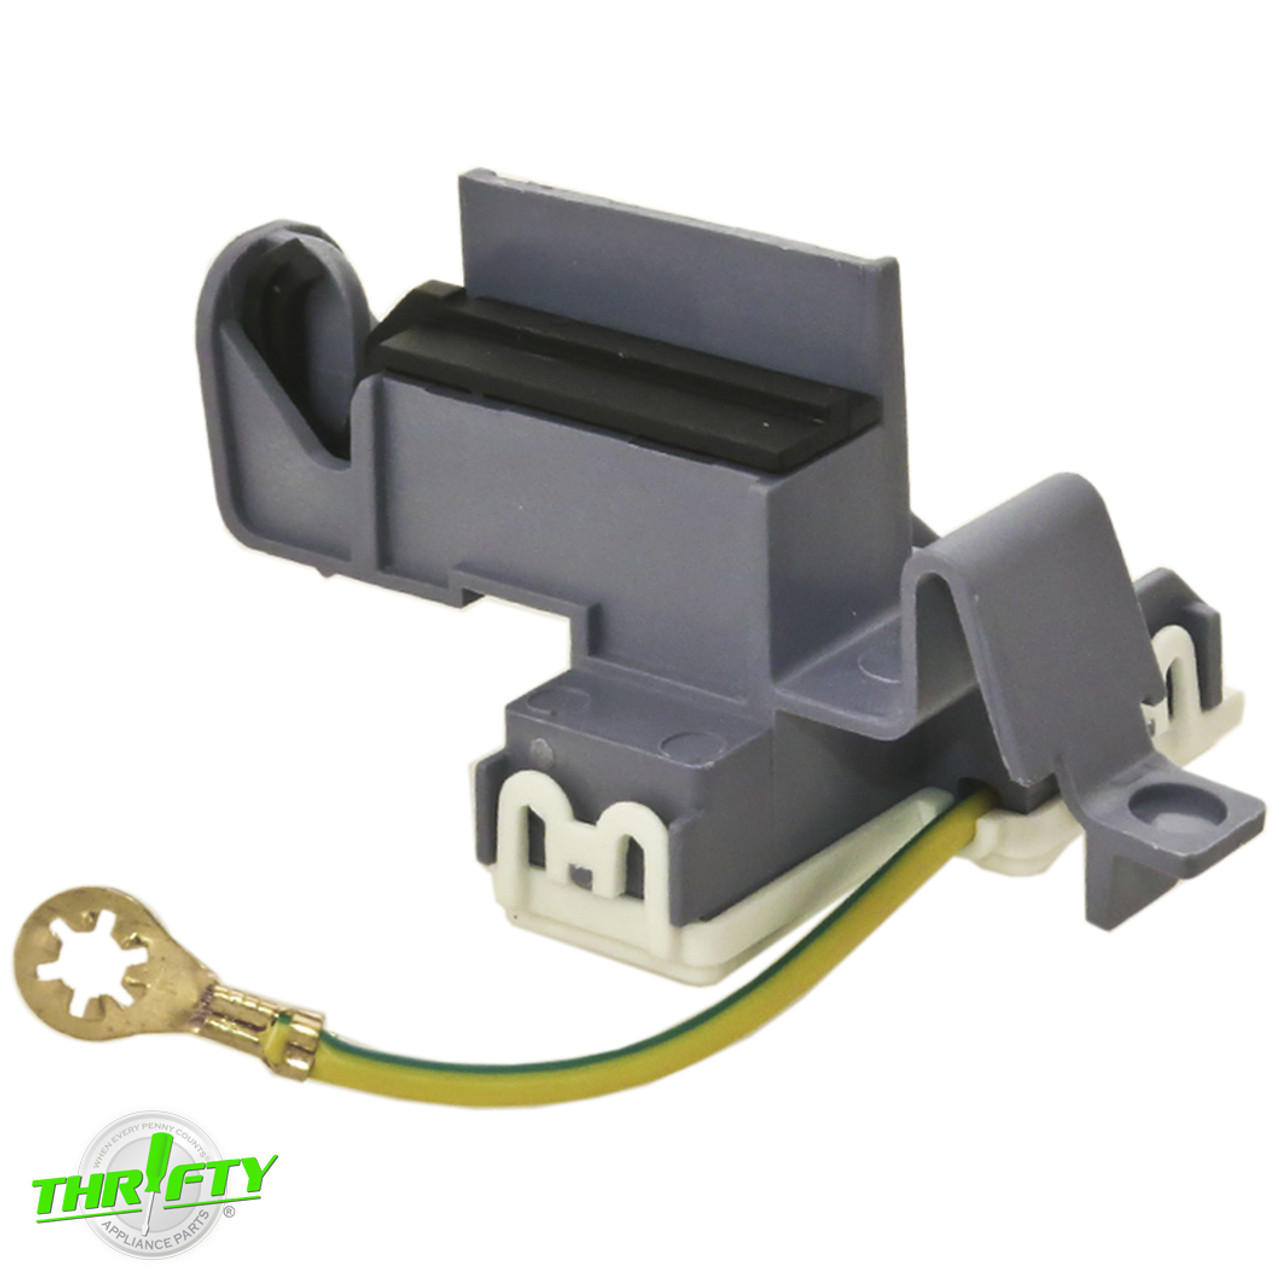 8318084 whirlpool lid switch replacement thrifty appliance parts diagram parts list for model atw4475vq0 admiralparts washerparts [ 1280 x 1280 Pixel ]